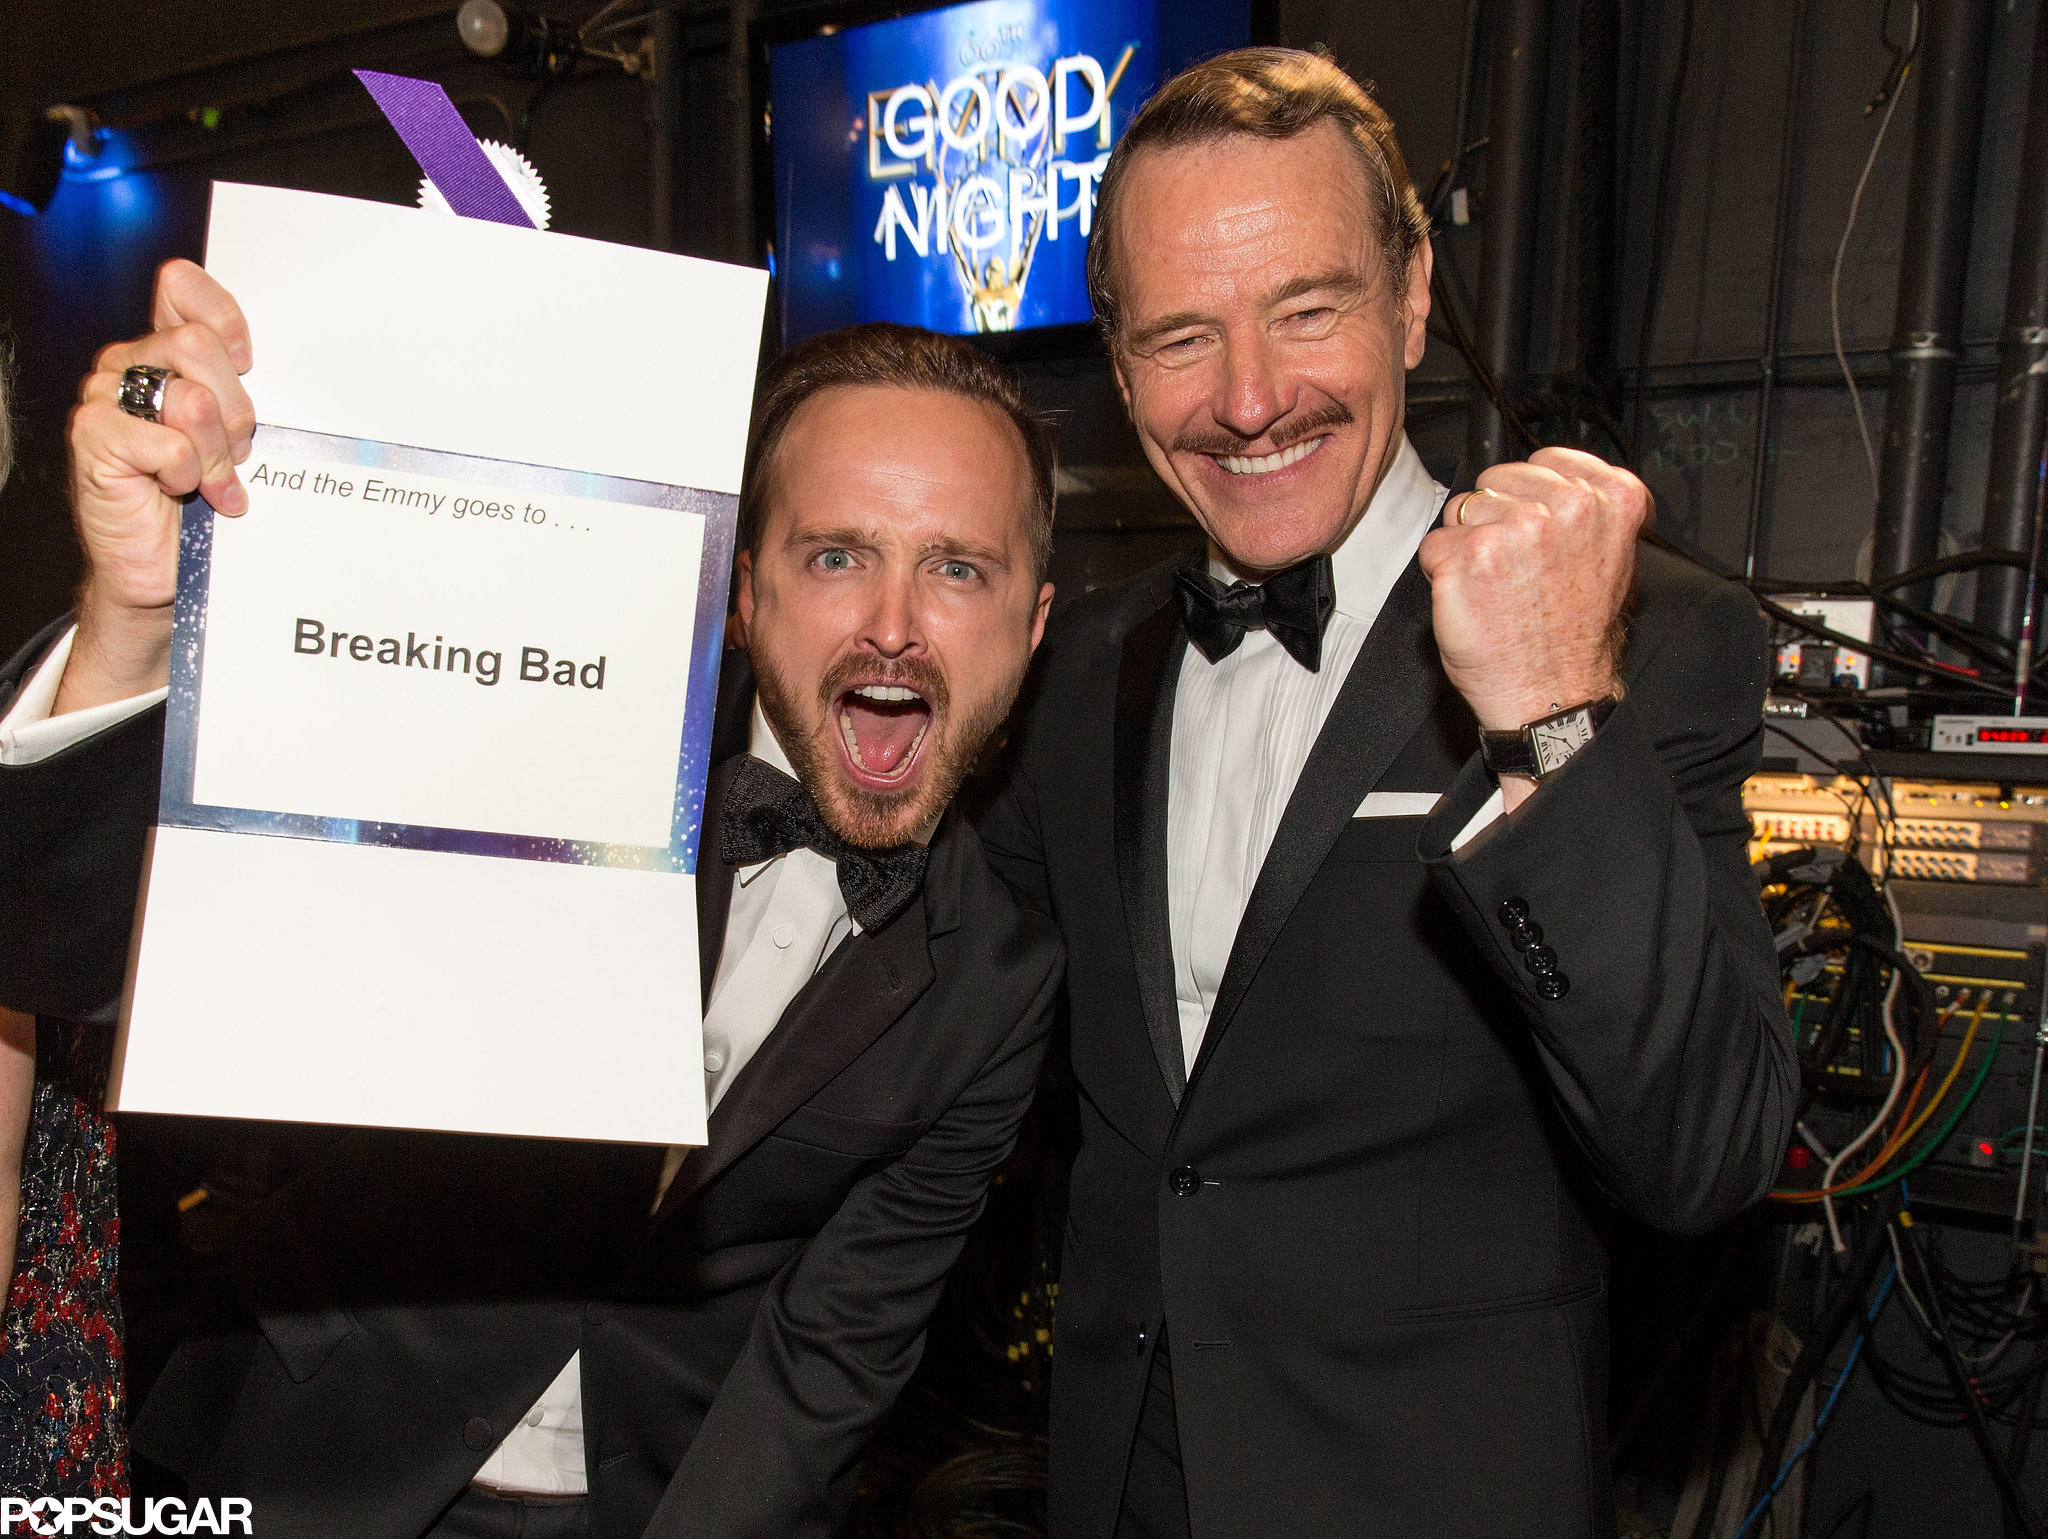 Aaron Paul and Bryan Cranston got animated about their win.